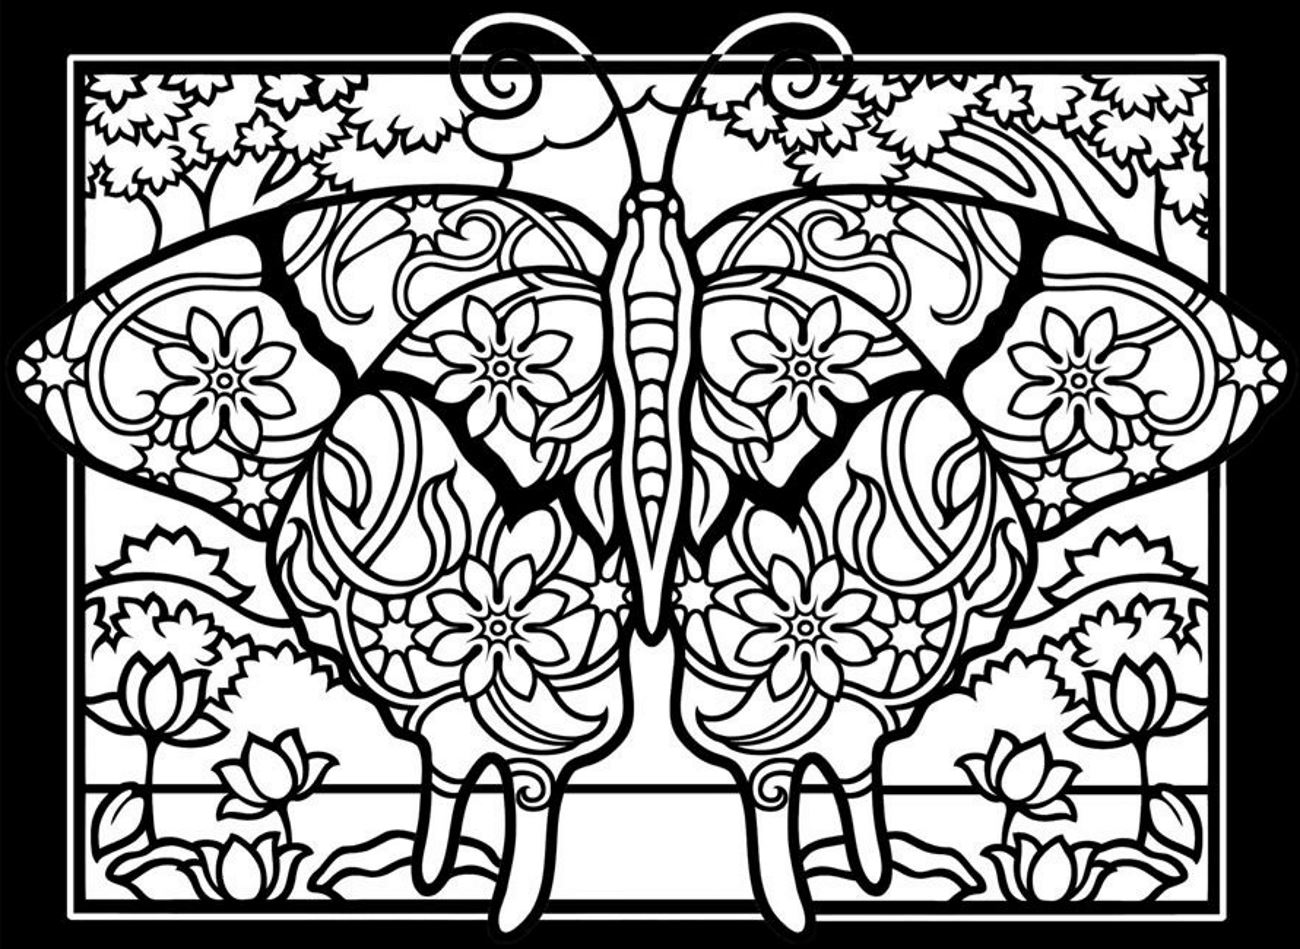 black and white coloring pages for adults butterfly coloring pages for adults best coloring pages white black for adults pages coloring and